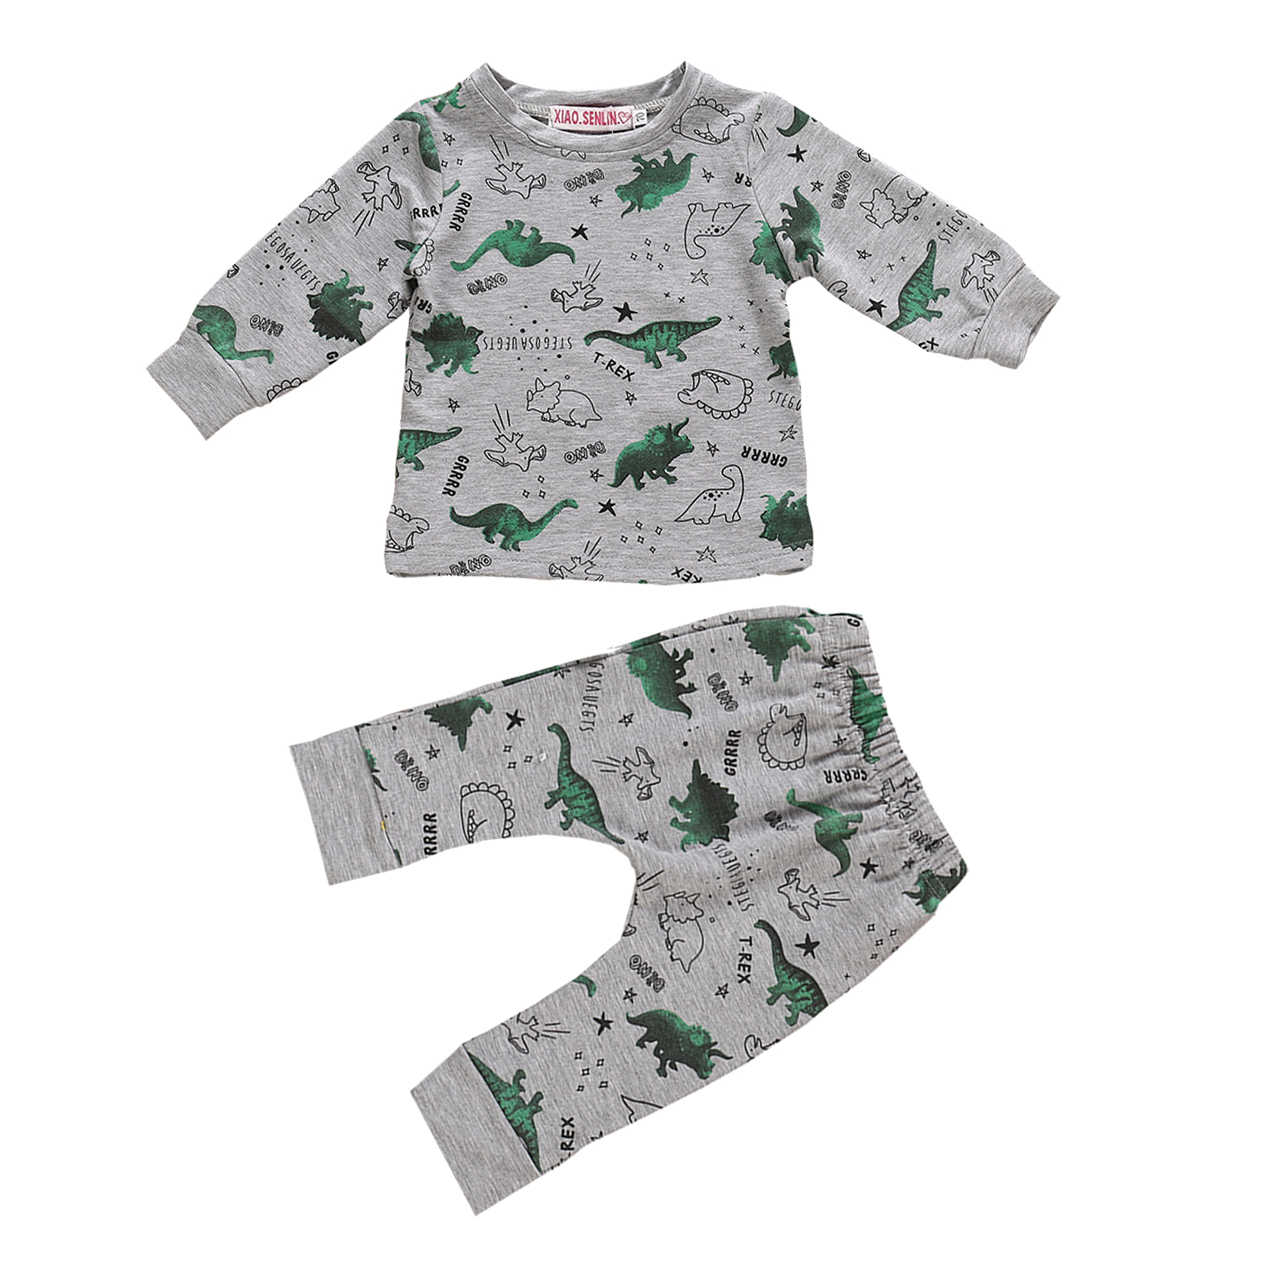 Baby Dinosaur Clothes 2 Piece Set Toddler Infant Boy Girl Gray Long Sleeve Autumn Cartoon Outfits